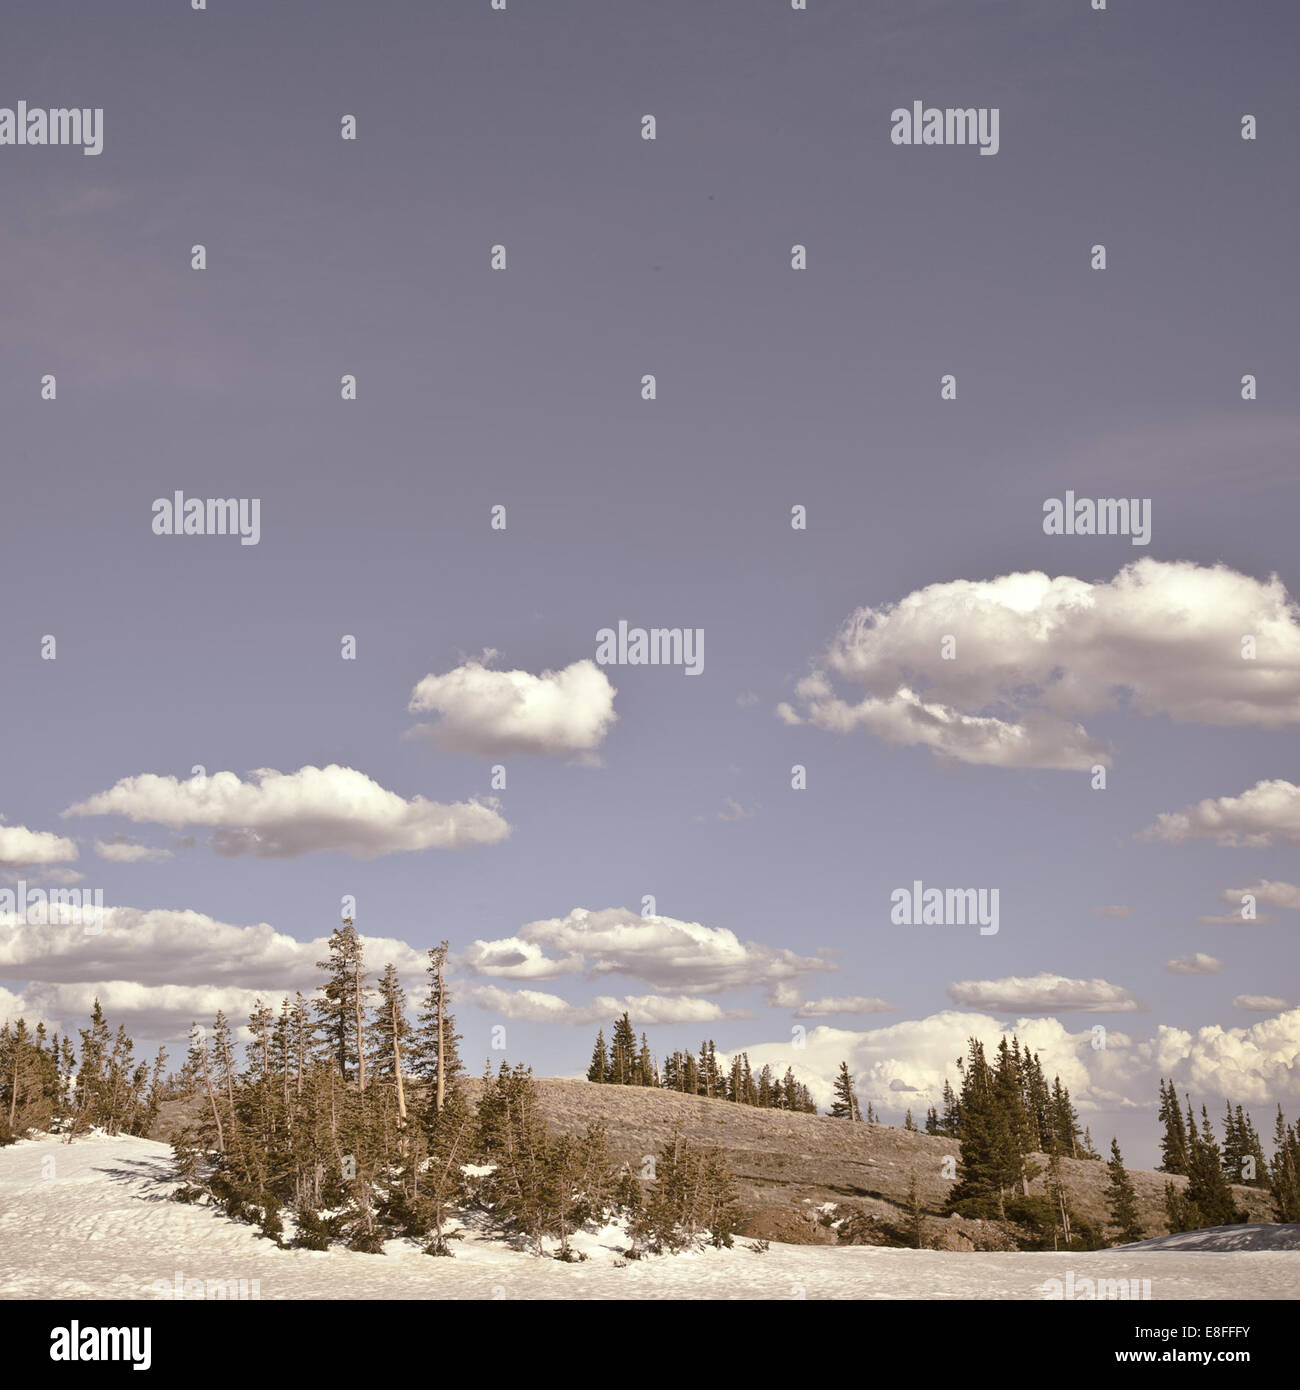 Clouds over hills - Stock Image